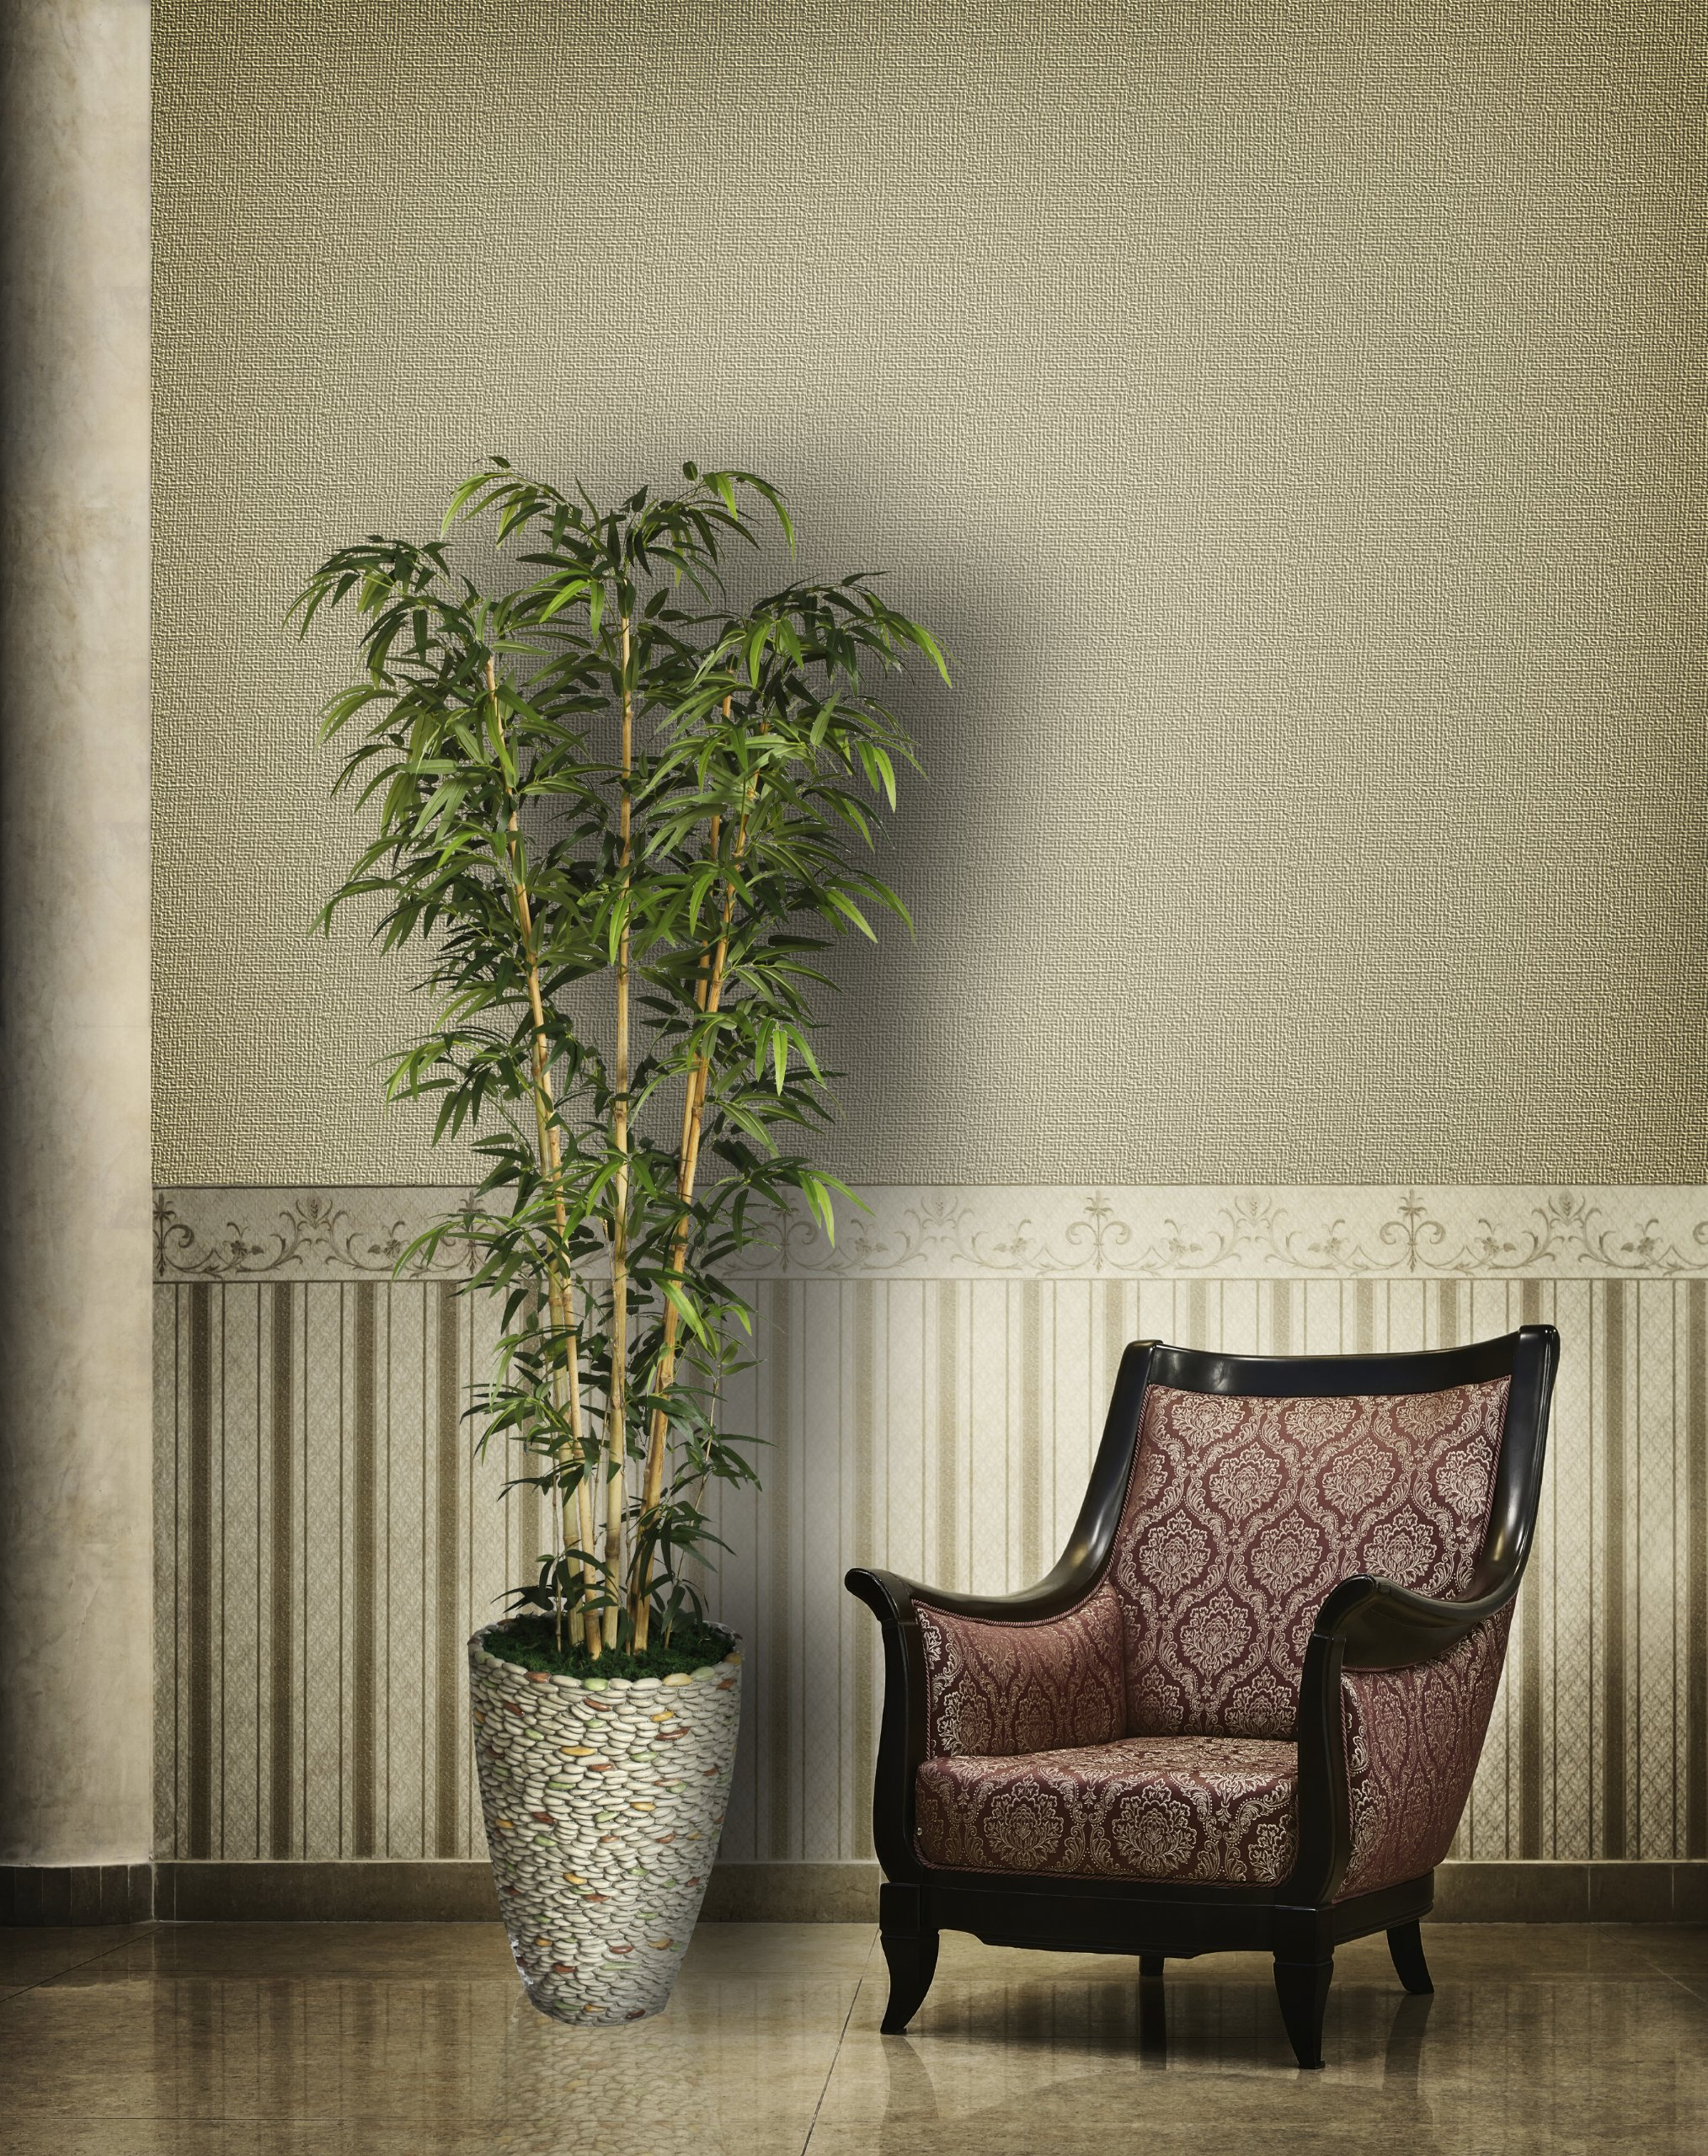 Laura Ashley VHX116209 86-Inch Natural Bamboo Tree in 16-Inch Fiber Stone Planter by Laura Ashley (Image #4)